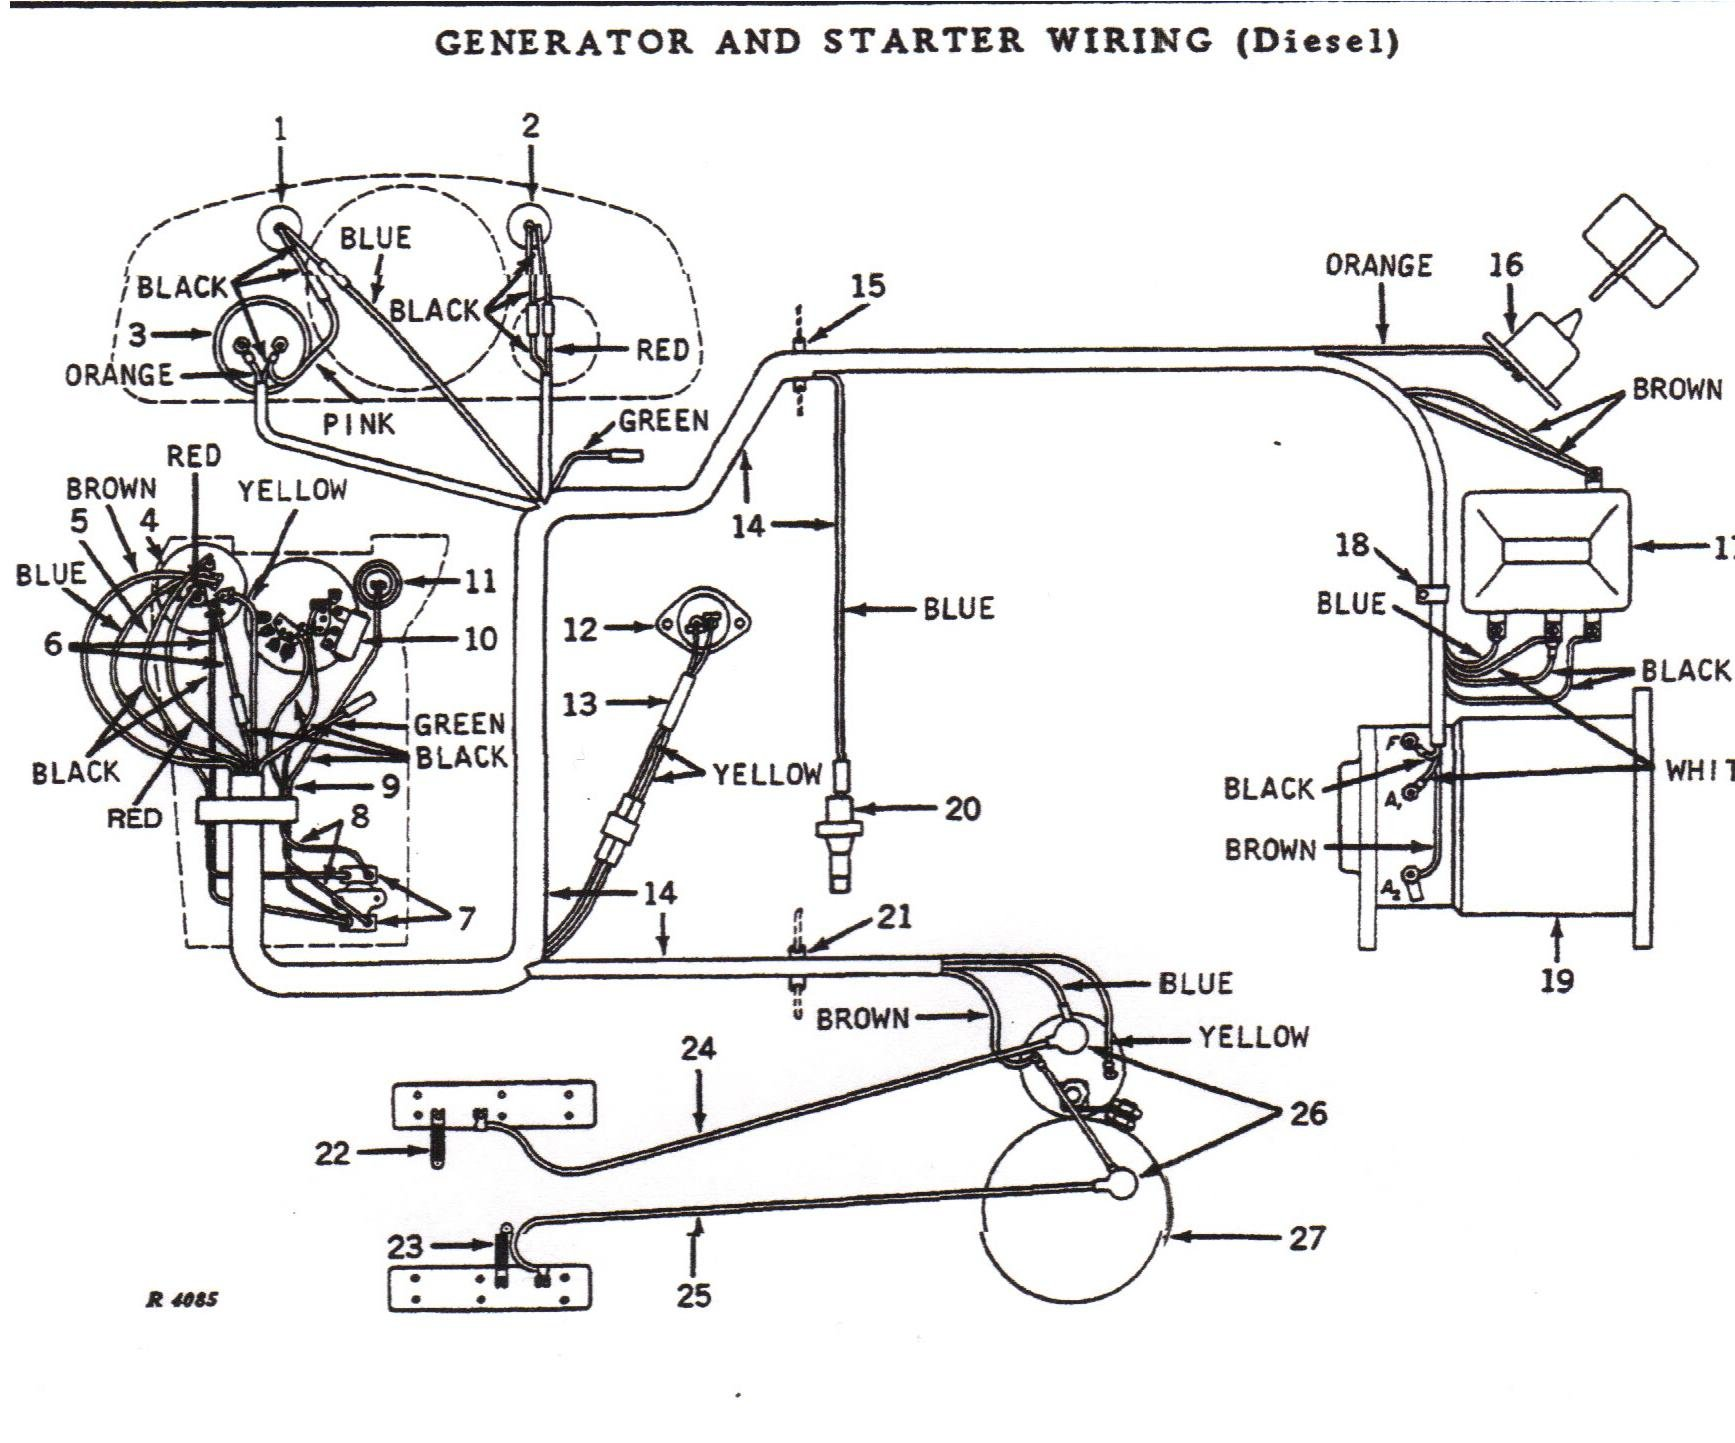 wiring diagram for a john deere stx46 with 5obk0 Trying Convert 4020 John Deere Tractor 12 Volt System Can on 6pie4 Own John Deere Stx38 Yellow Deck Lawn Tractor Model Cv12 5s additionally 5obk0 Trying Convert 4020 John Deere Tractor 12 Volt System Can also T 240902 as well Kohler  mand 12 5 Electrical Diagram also 7nh8s Need Wiring Schematic Starting Charging System.